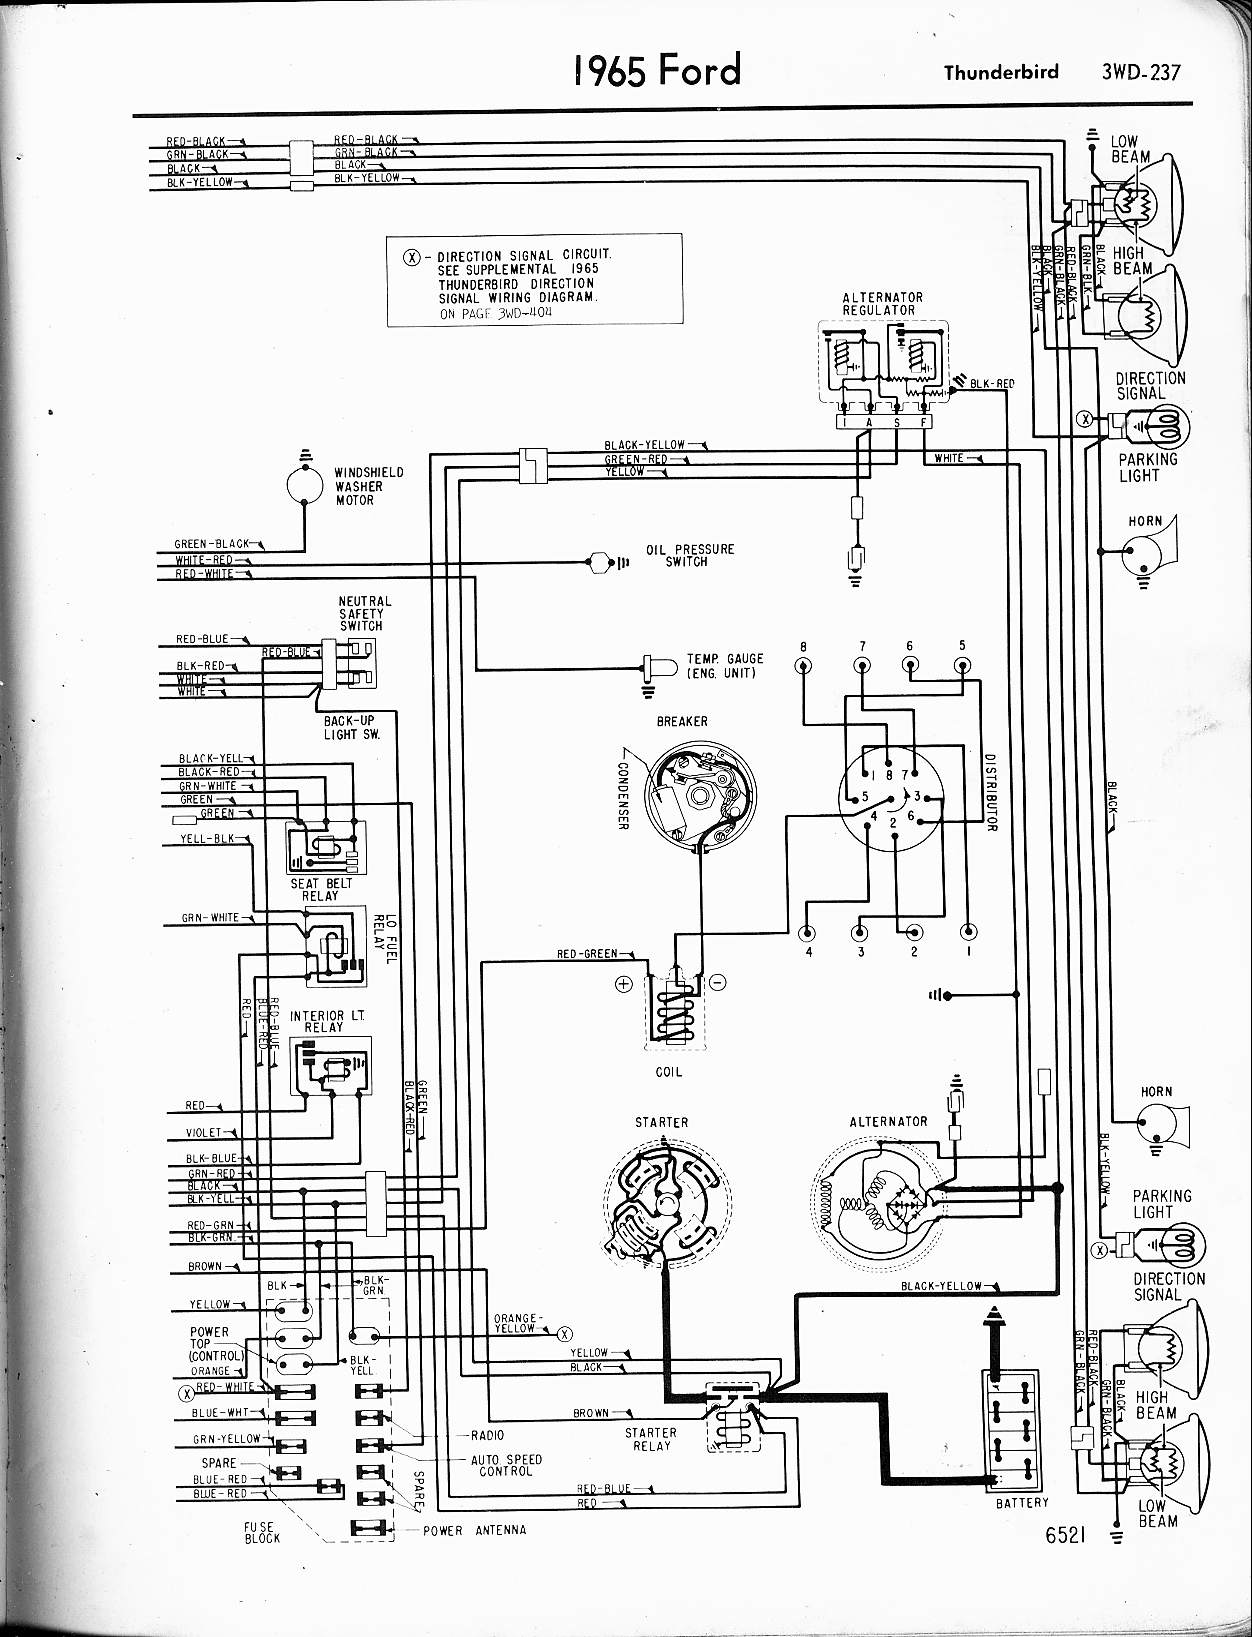 65 Ford Wiring Diagram Data 1956 Chevy Truck Diagrams 1957 Schematic For 1966 Pick Up V8 57